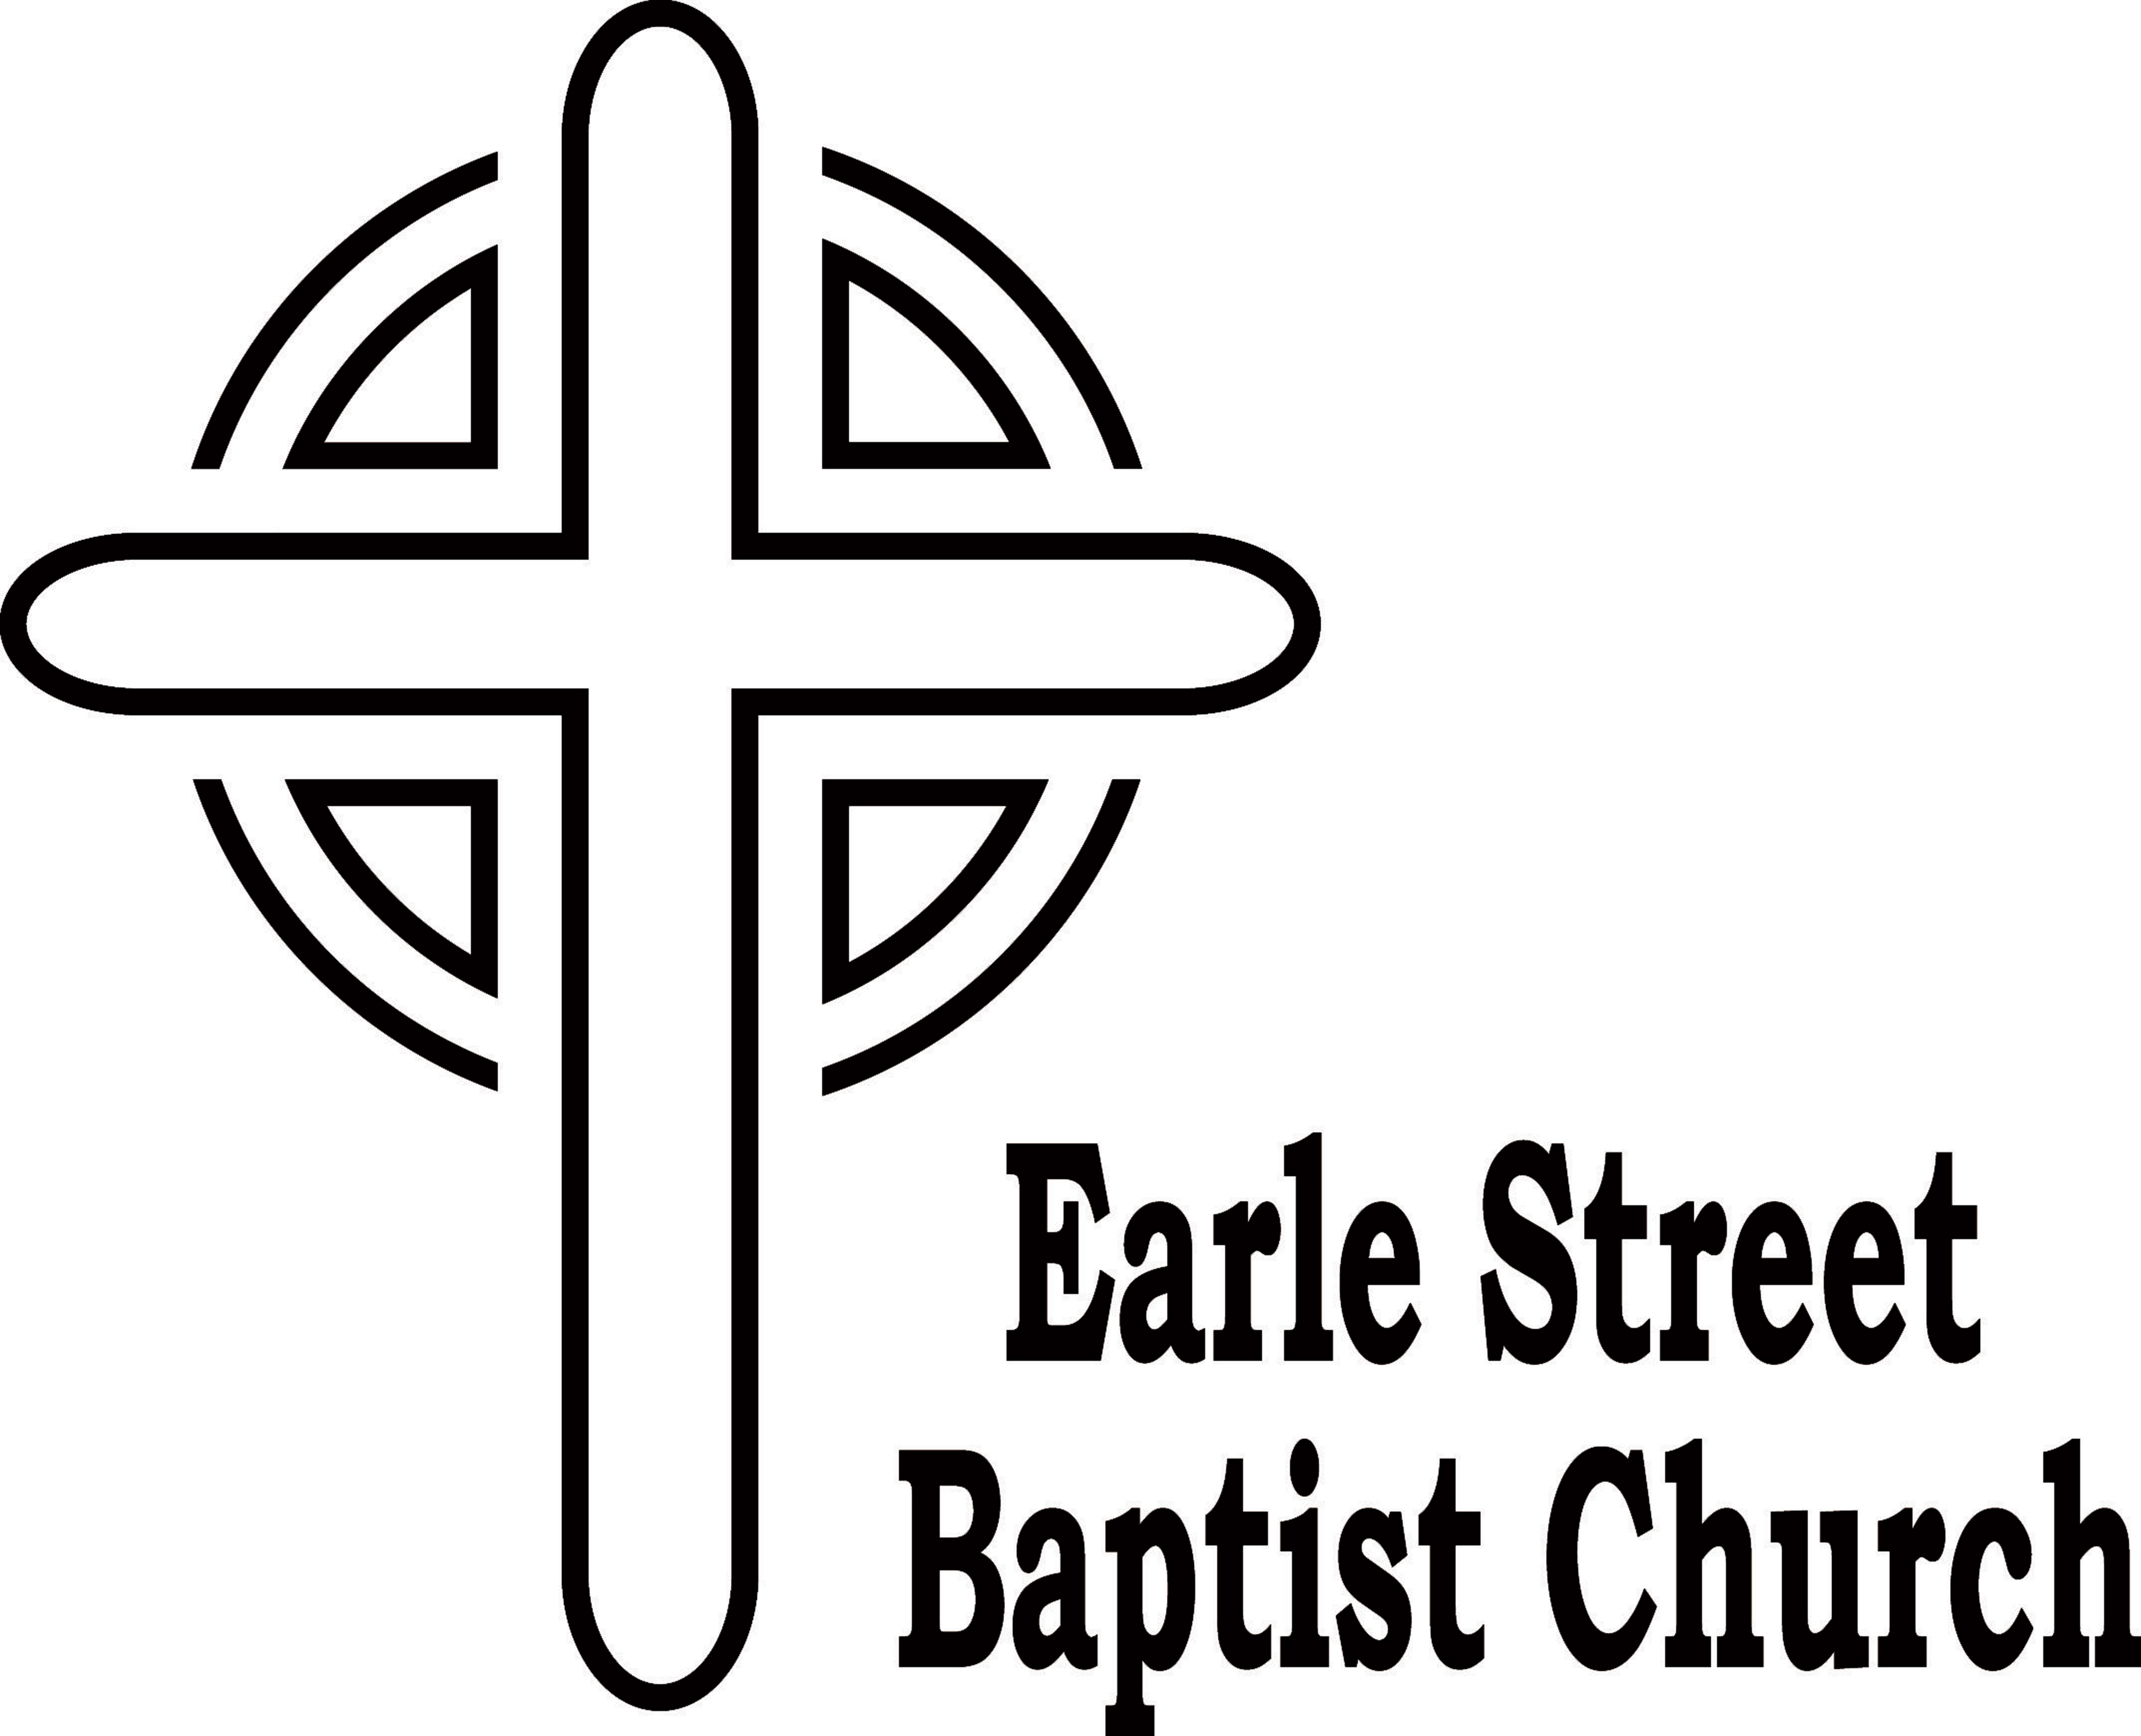 Earle Street Baptist Church $2500 sponsorship